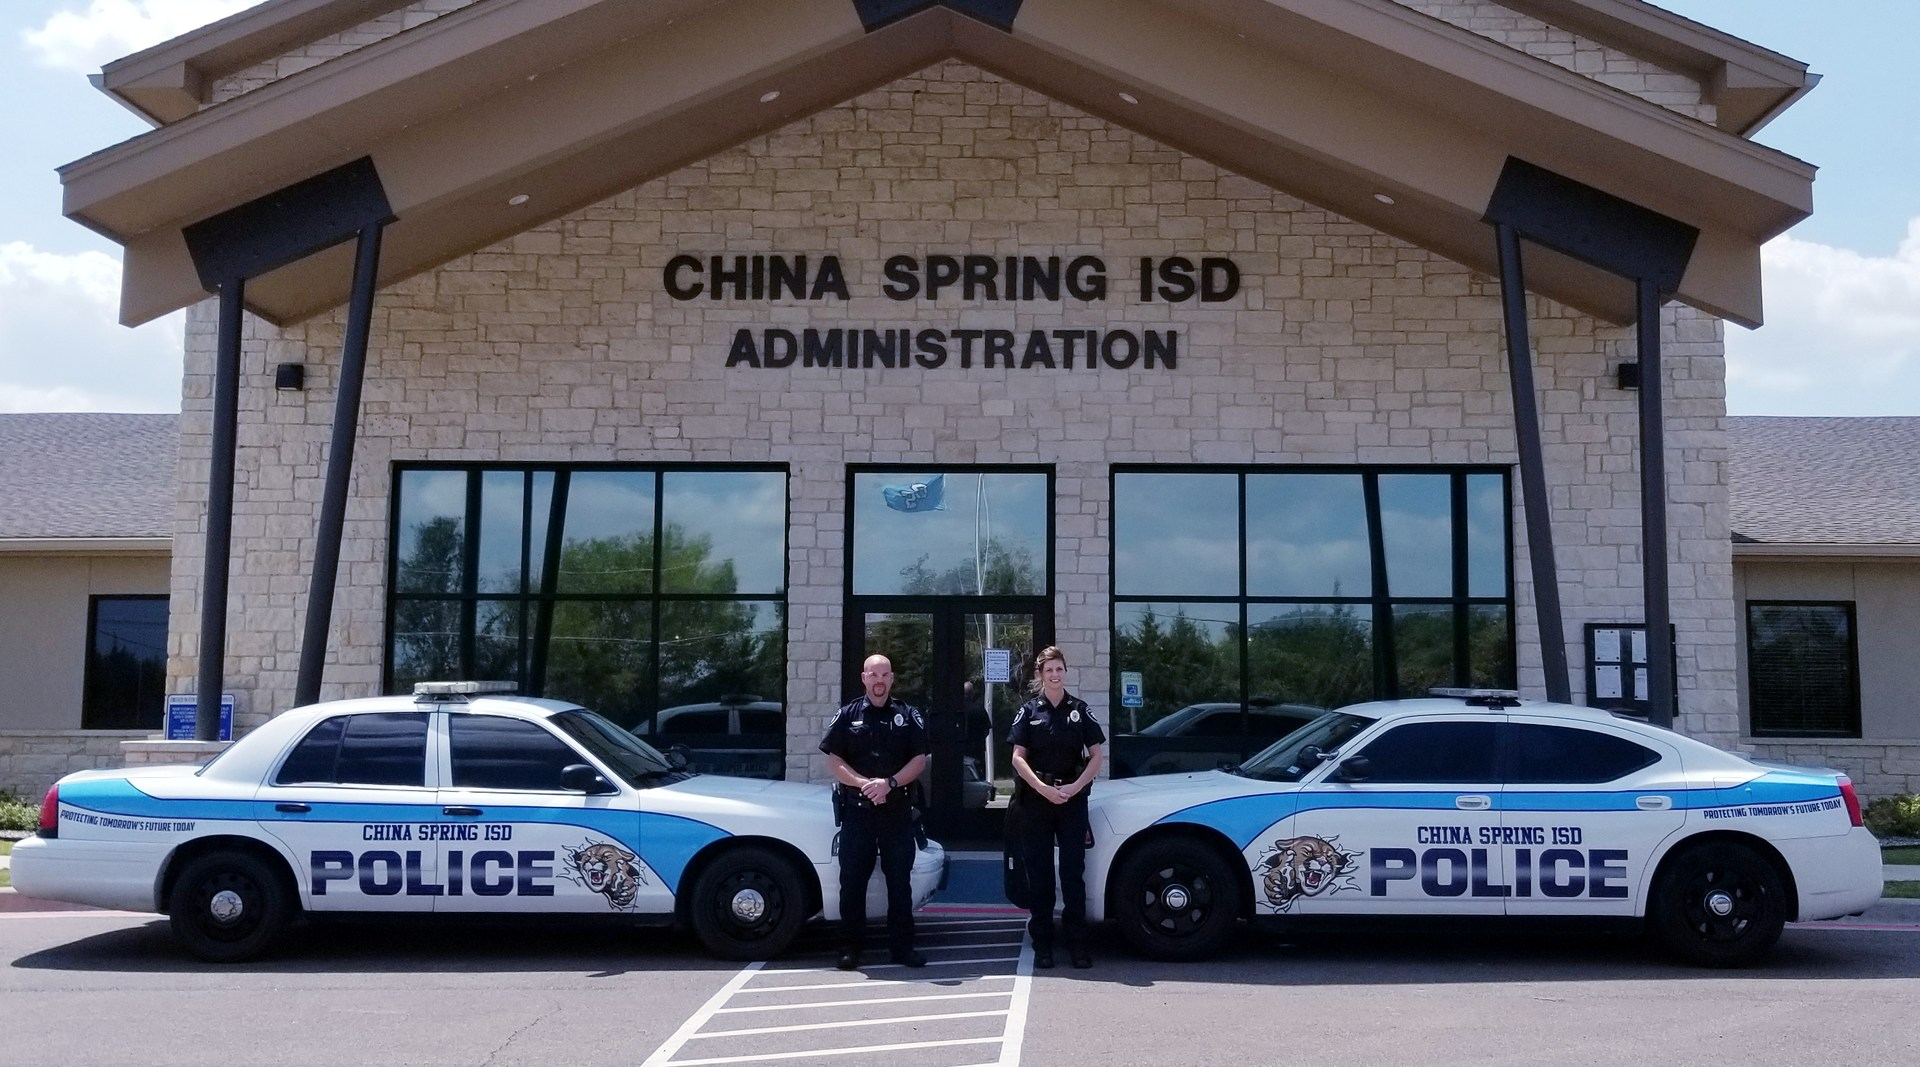 China Spring ISD Police Department